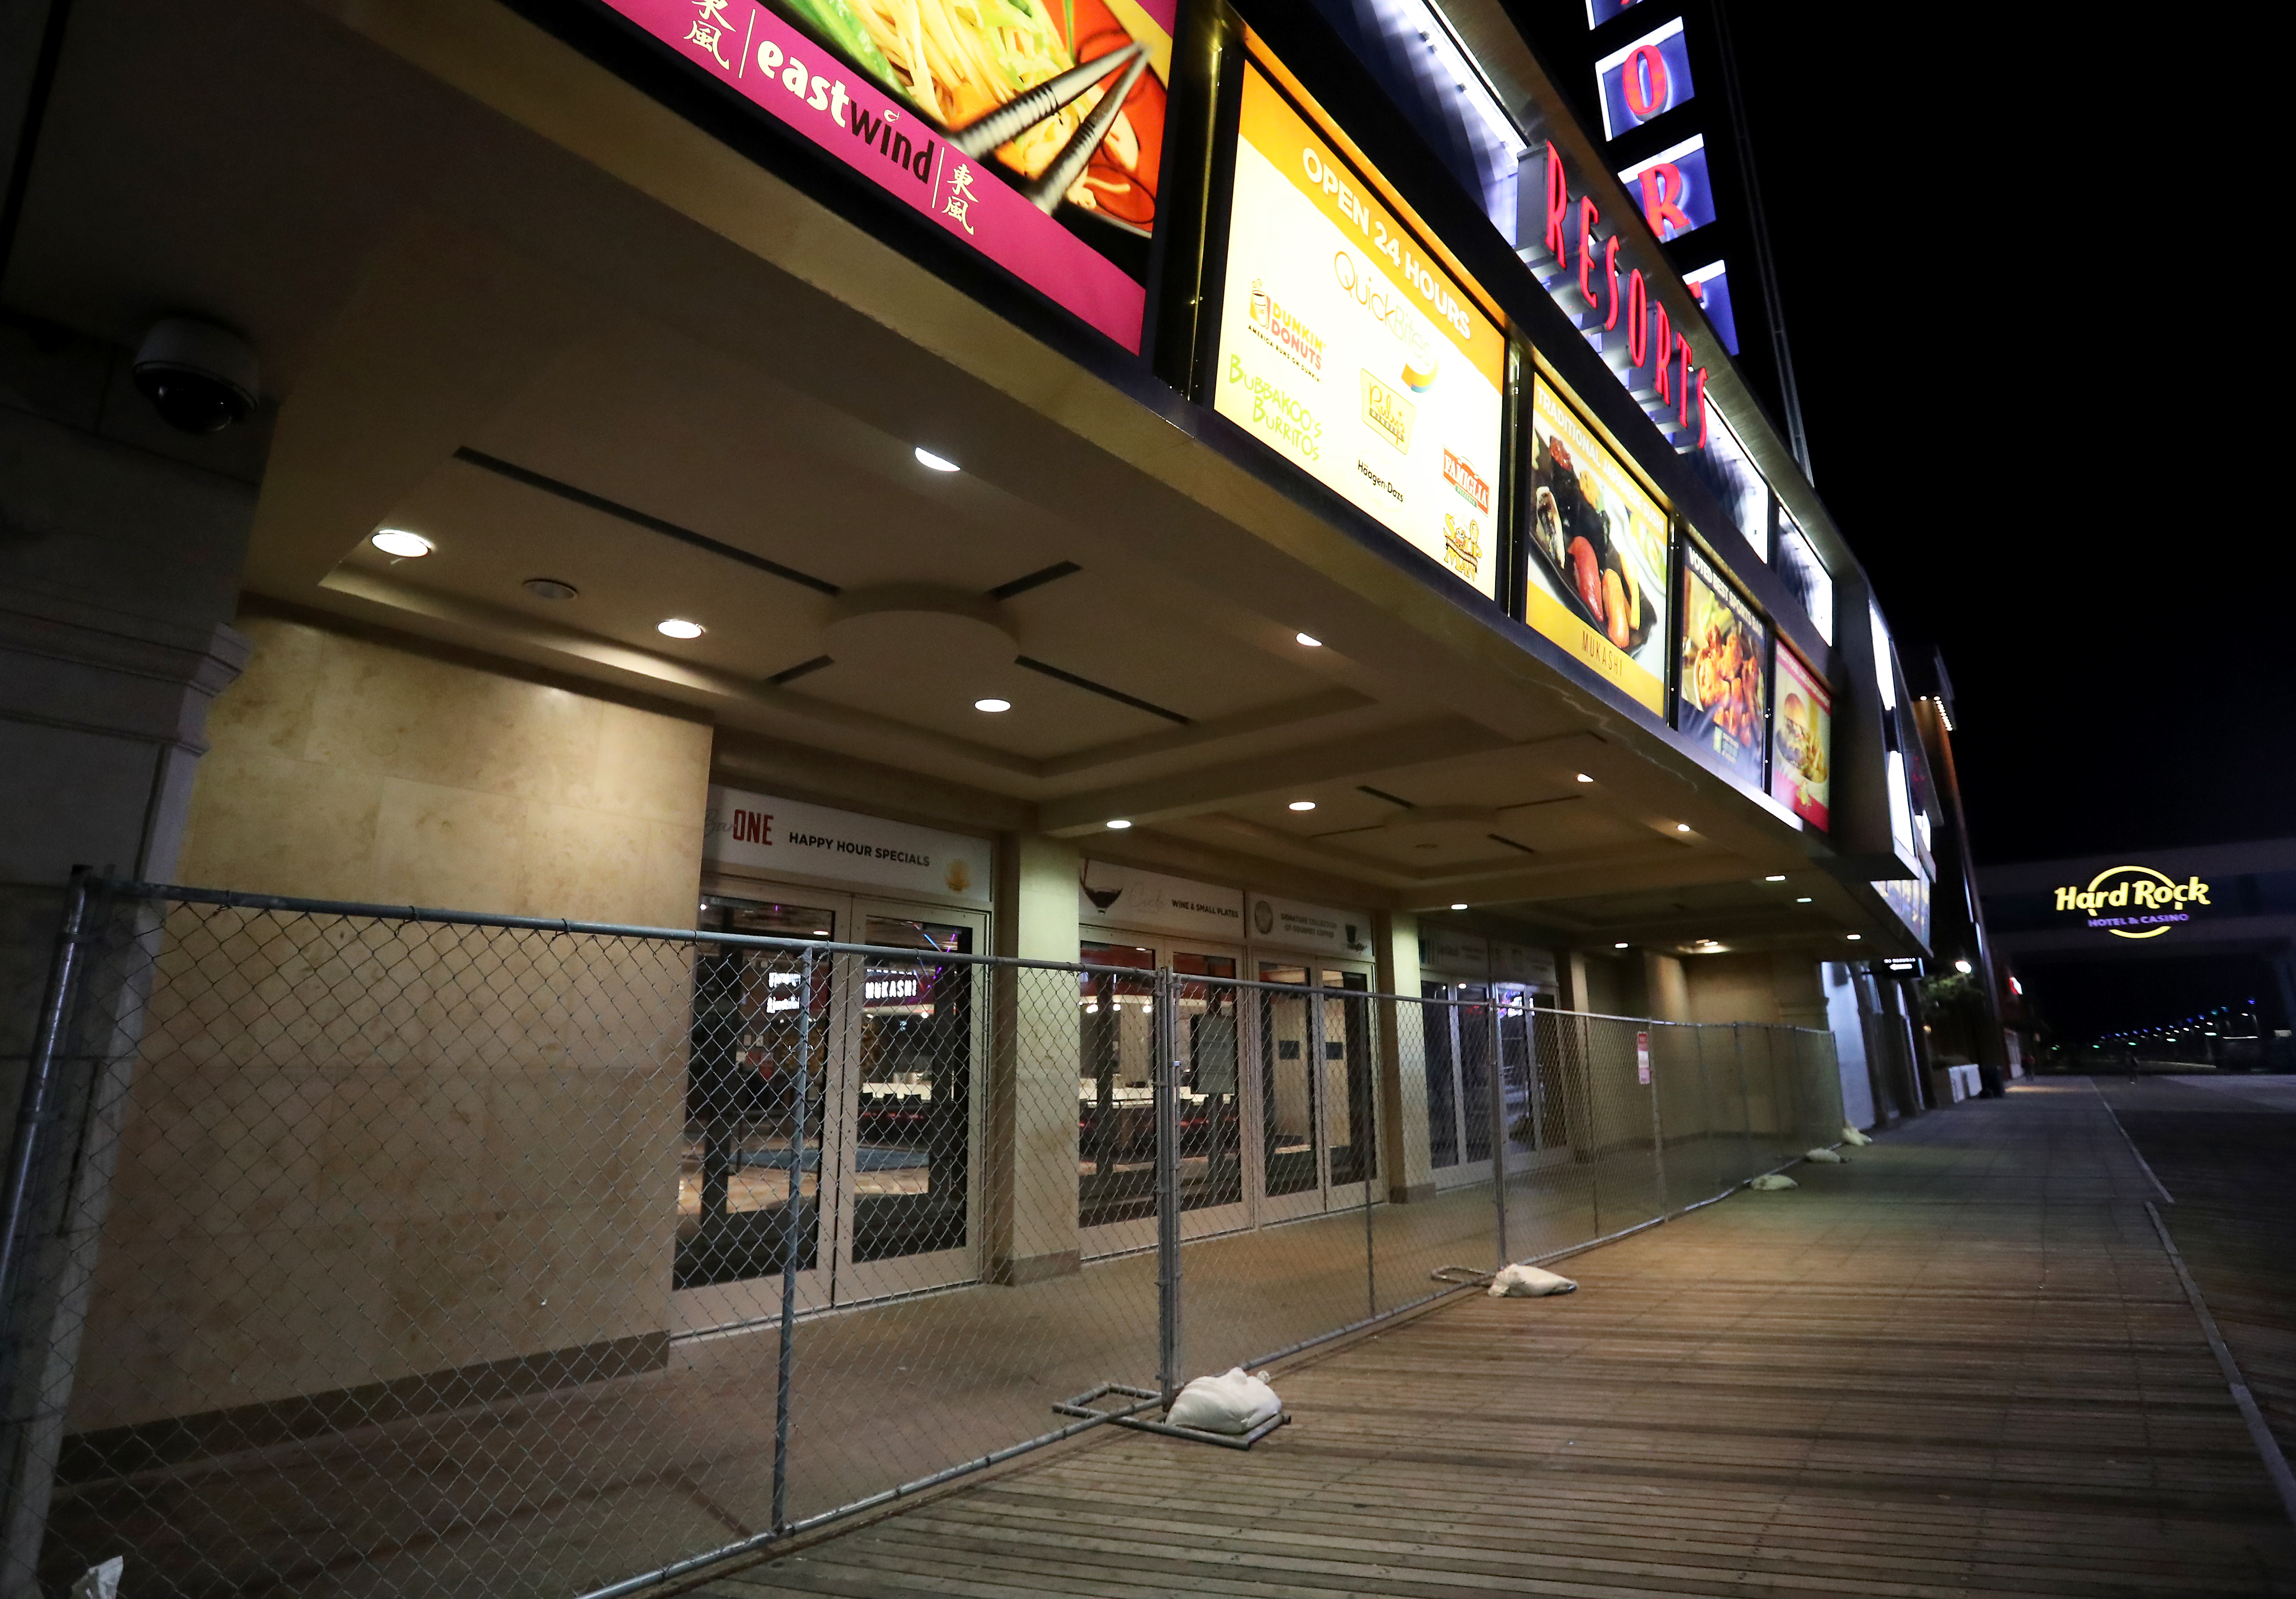 Atlantic city closed casinos list north star mohican casino hotel reservations